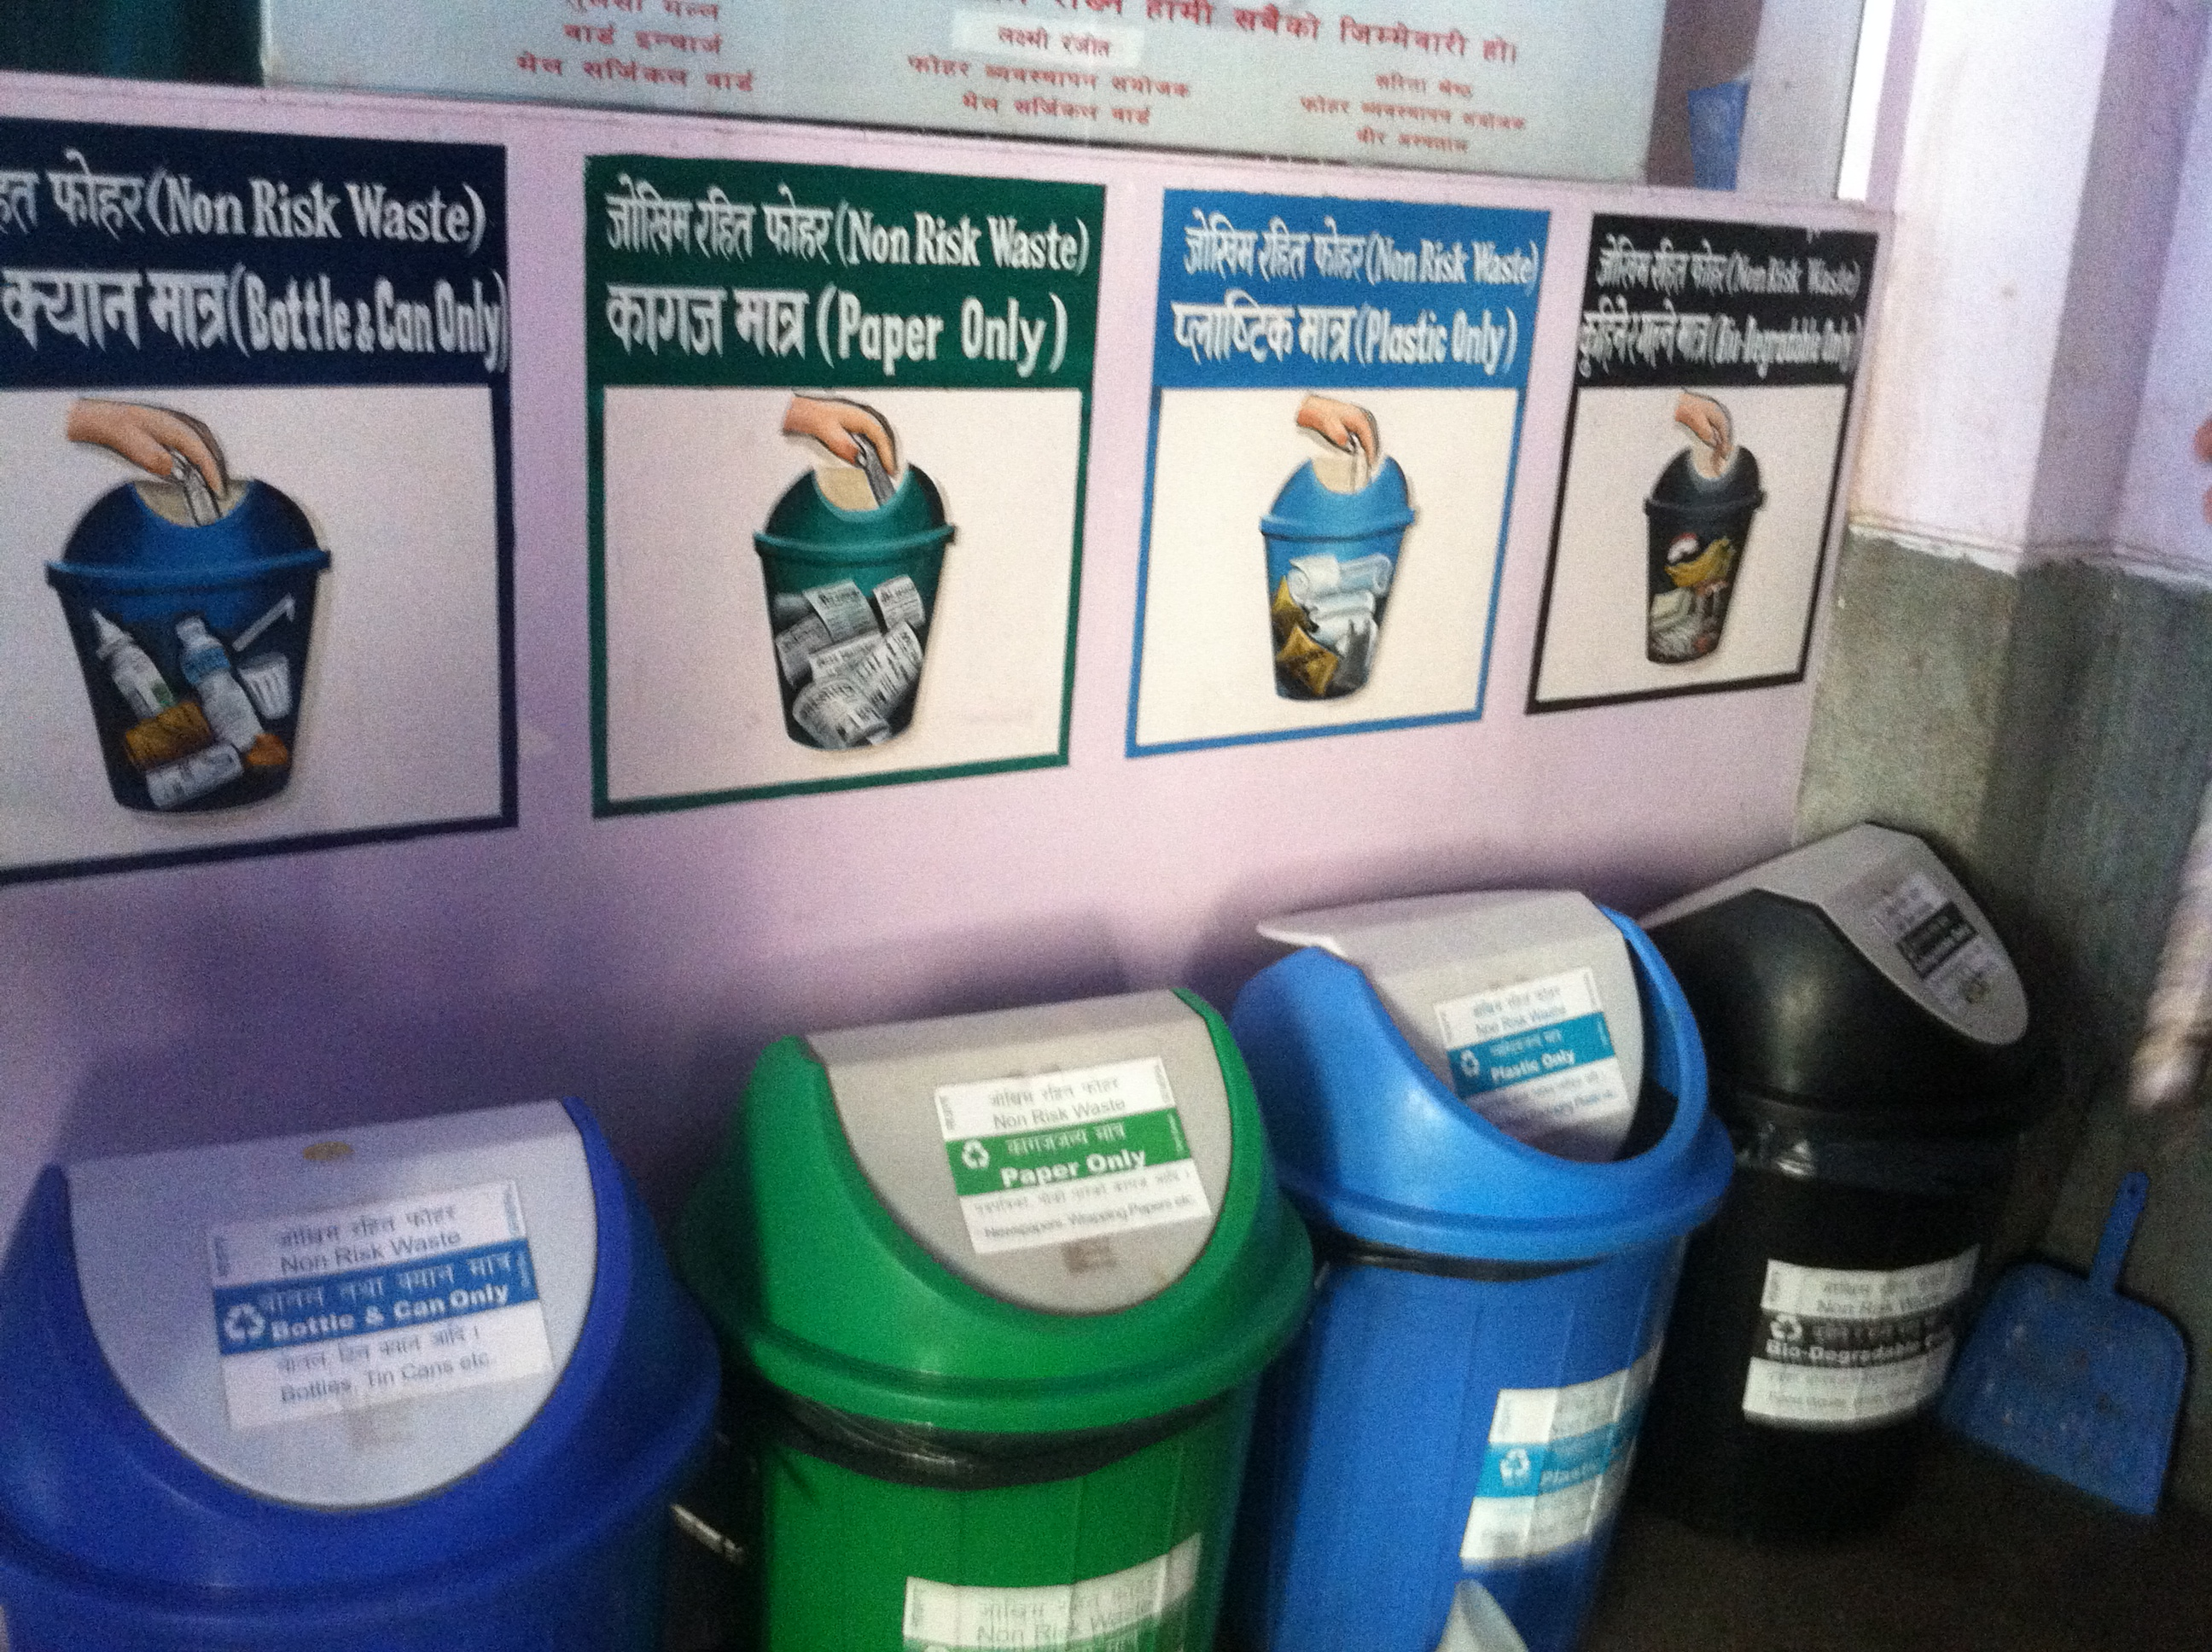 Bir Hospital in Nepal's capital of Kathmandu sorts medical waste for safe disposal in an effort to improve its health waste management and patient/provider safety